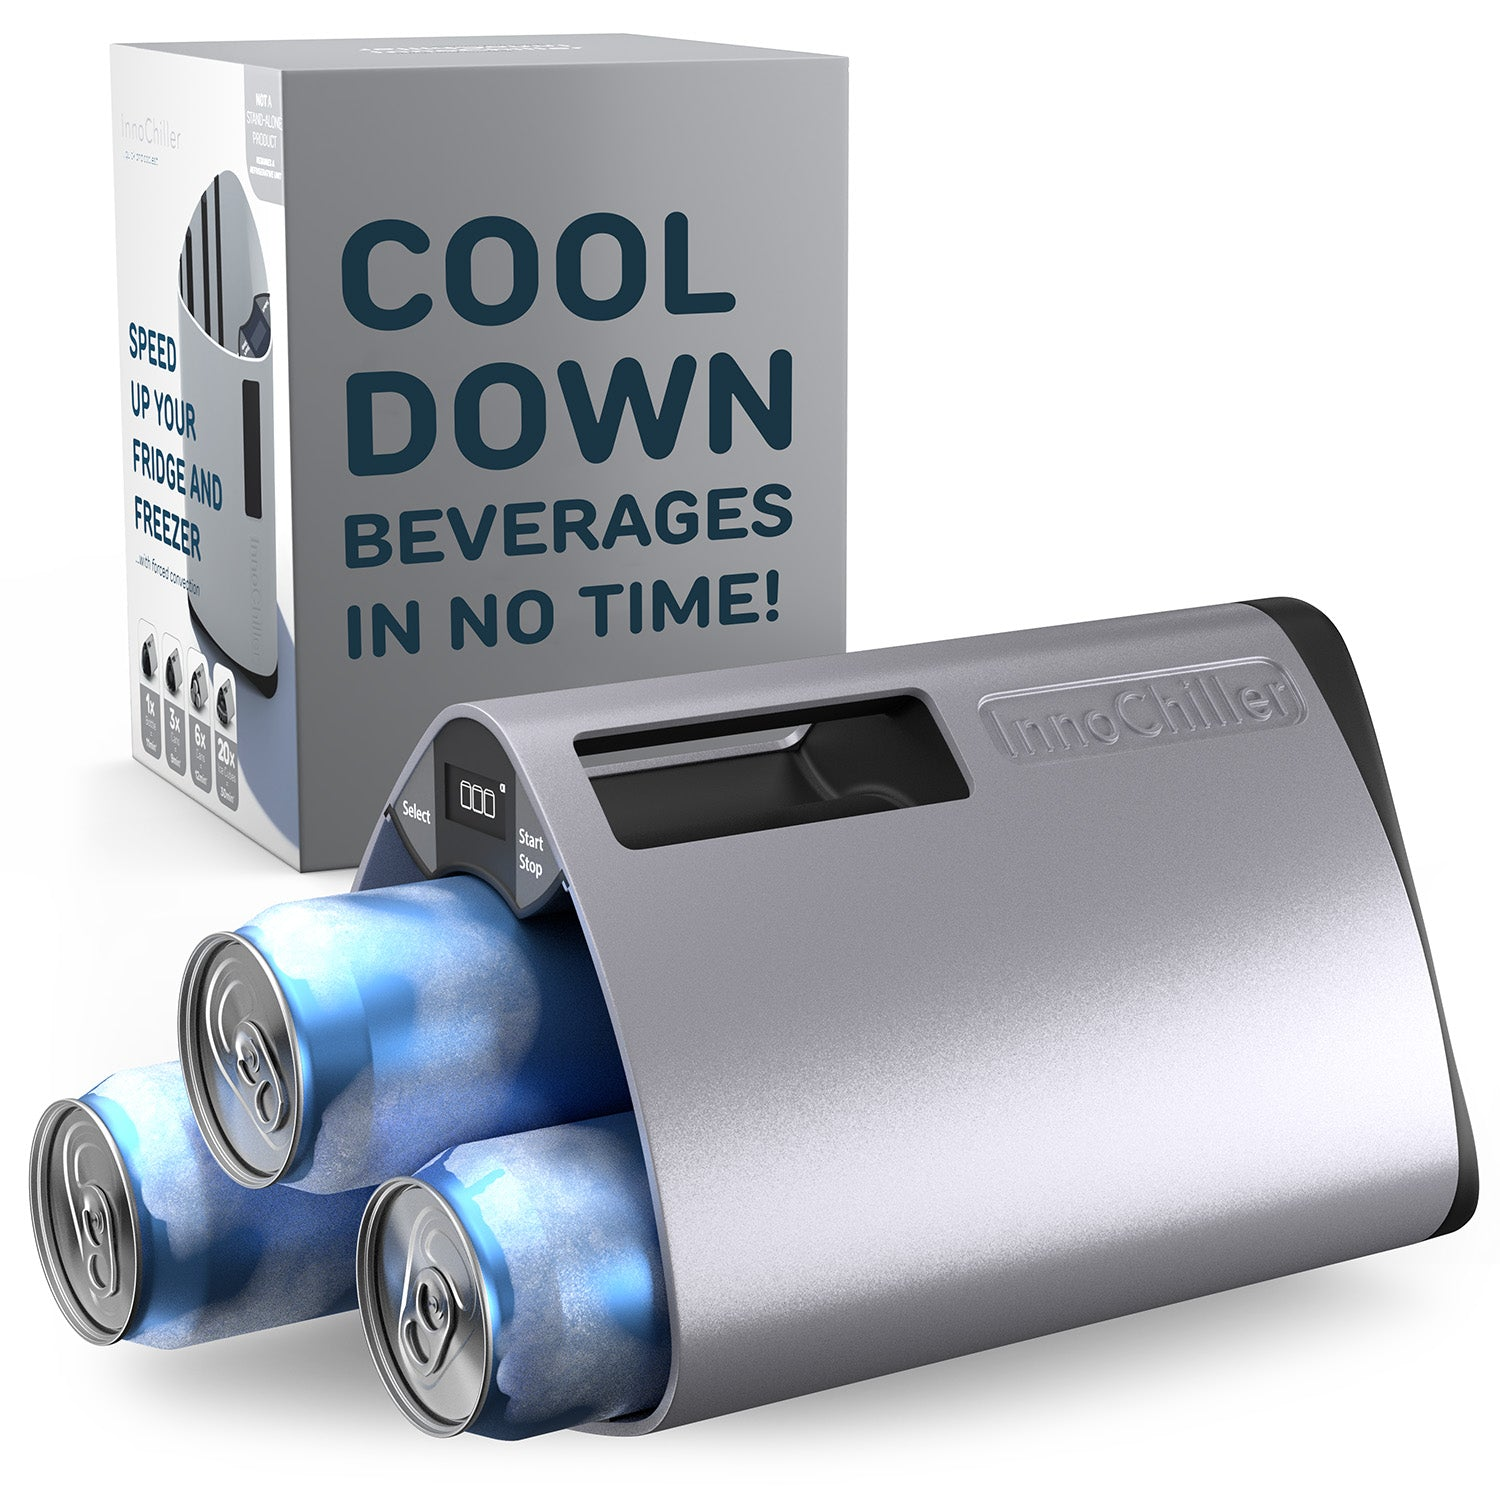 InnoChiller™ Beverage Cooler & Ice Maker